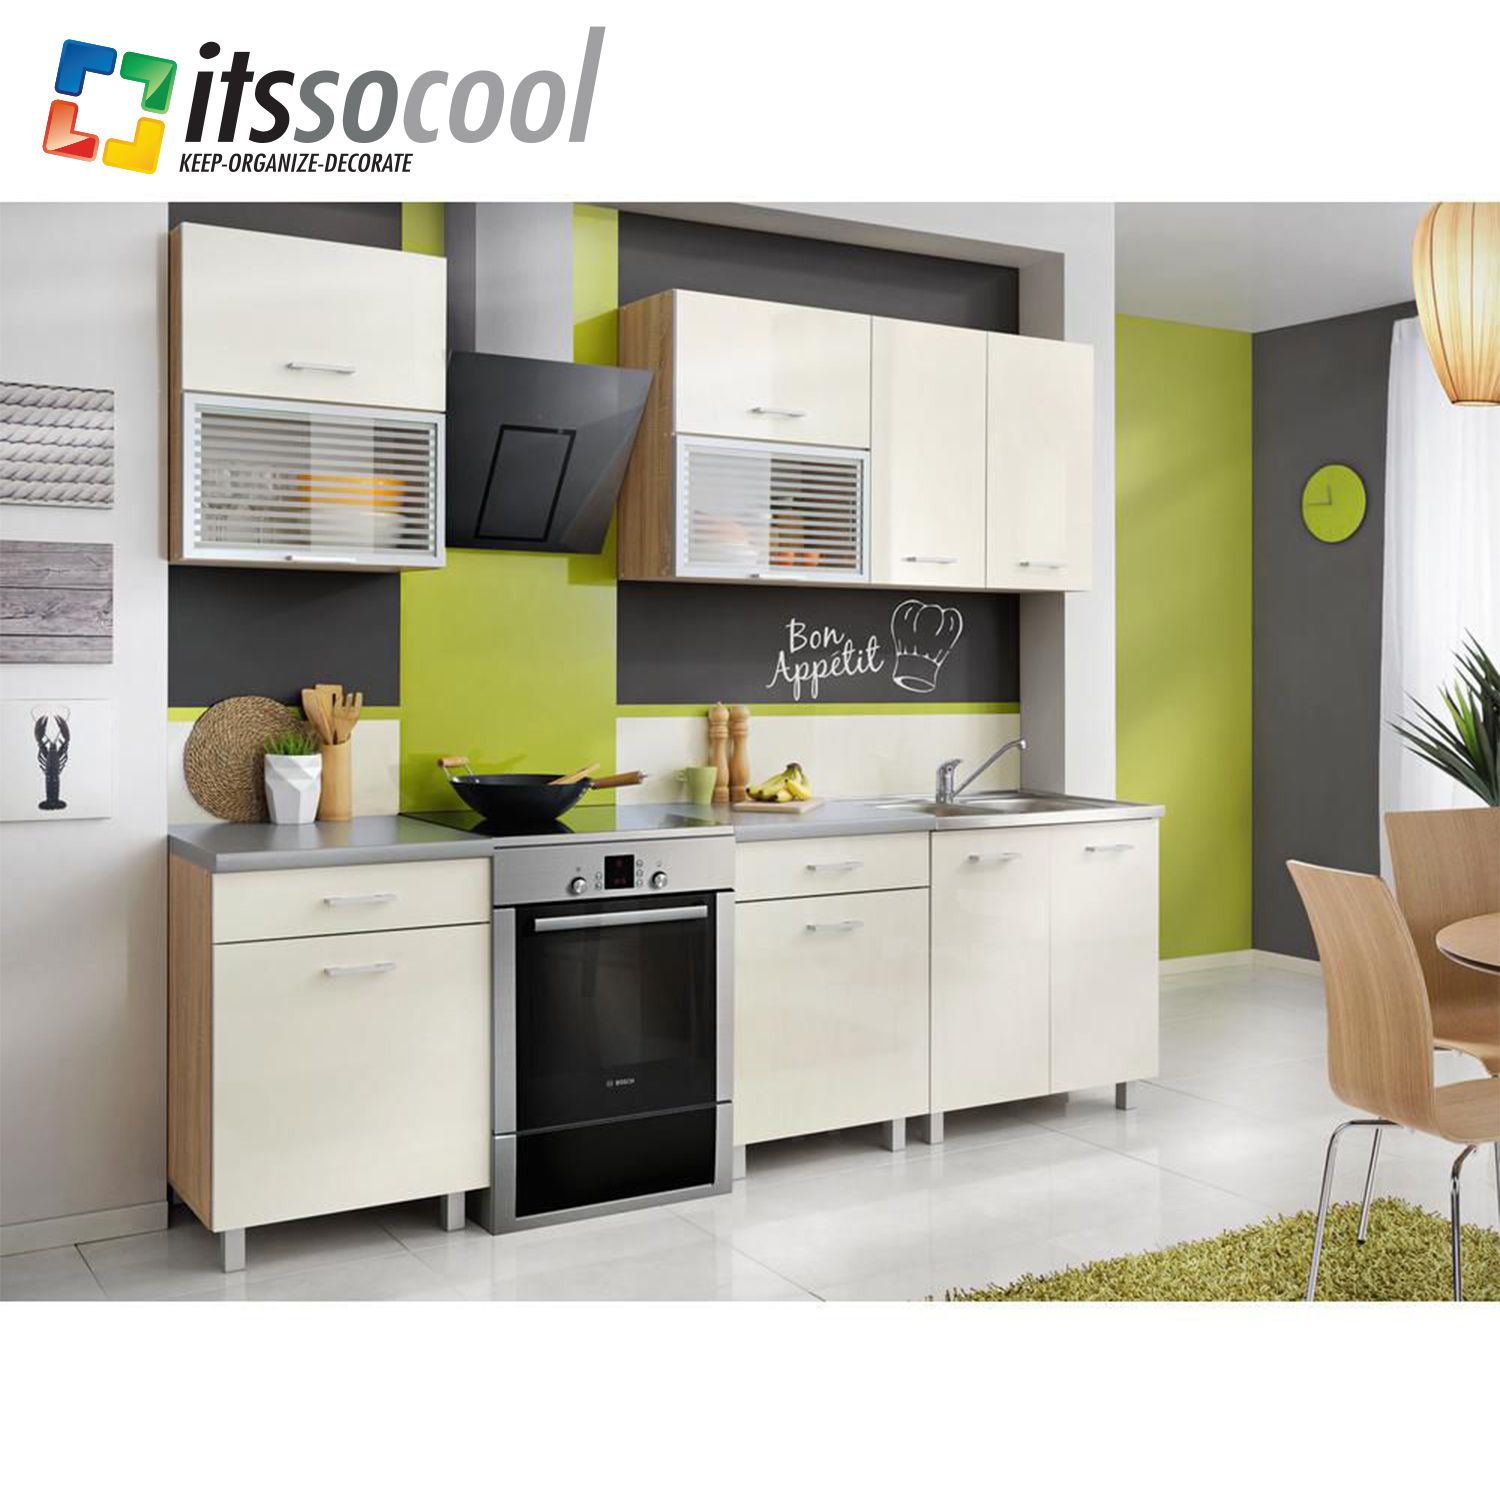 Kitchen cabinets made of laminated board. Color: Sonoma oka farme ...